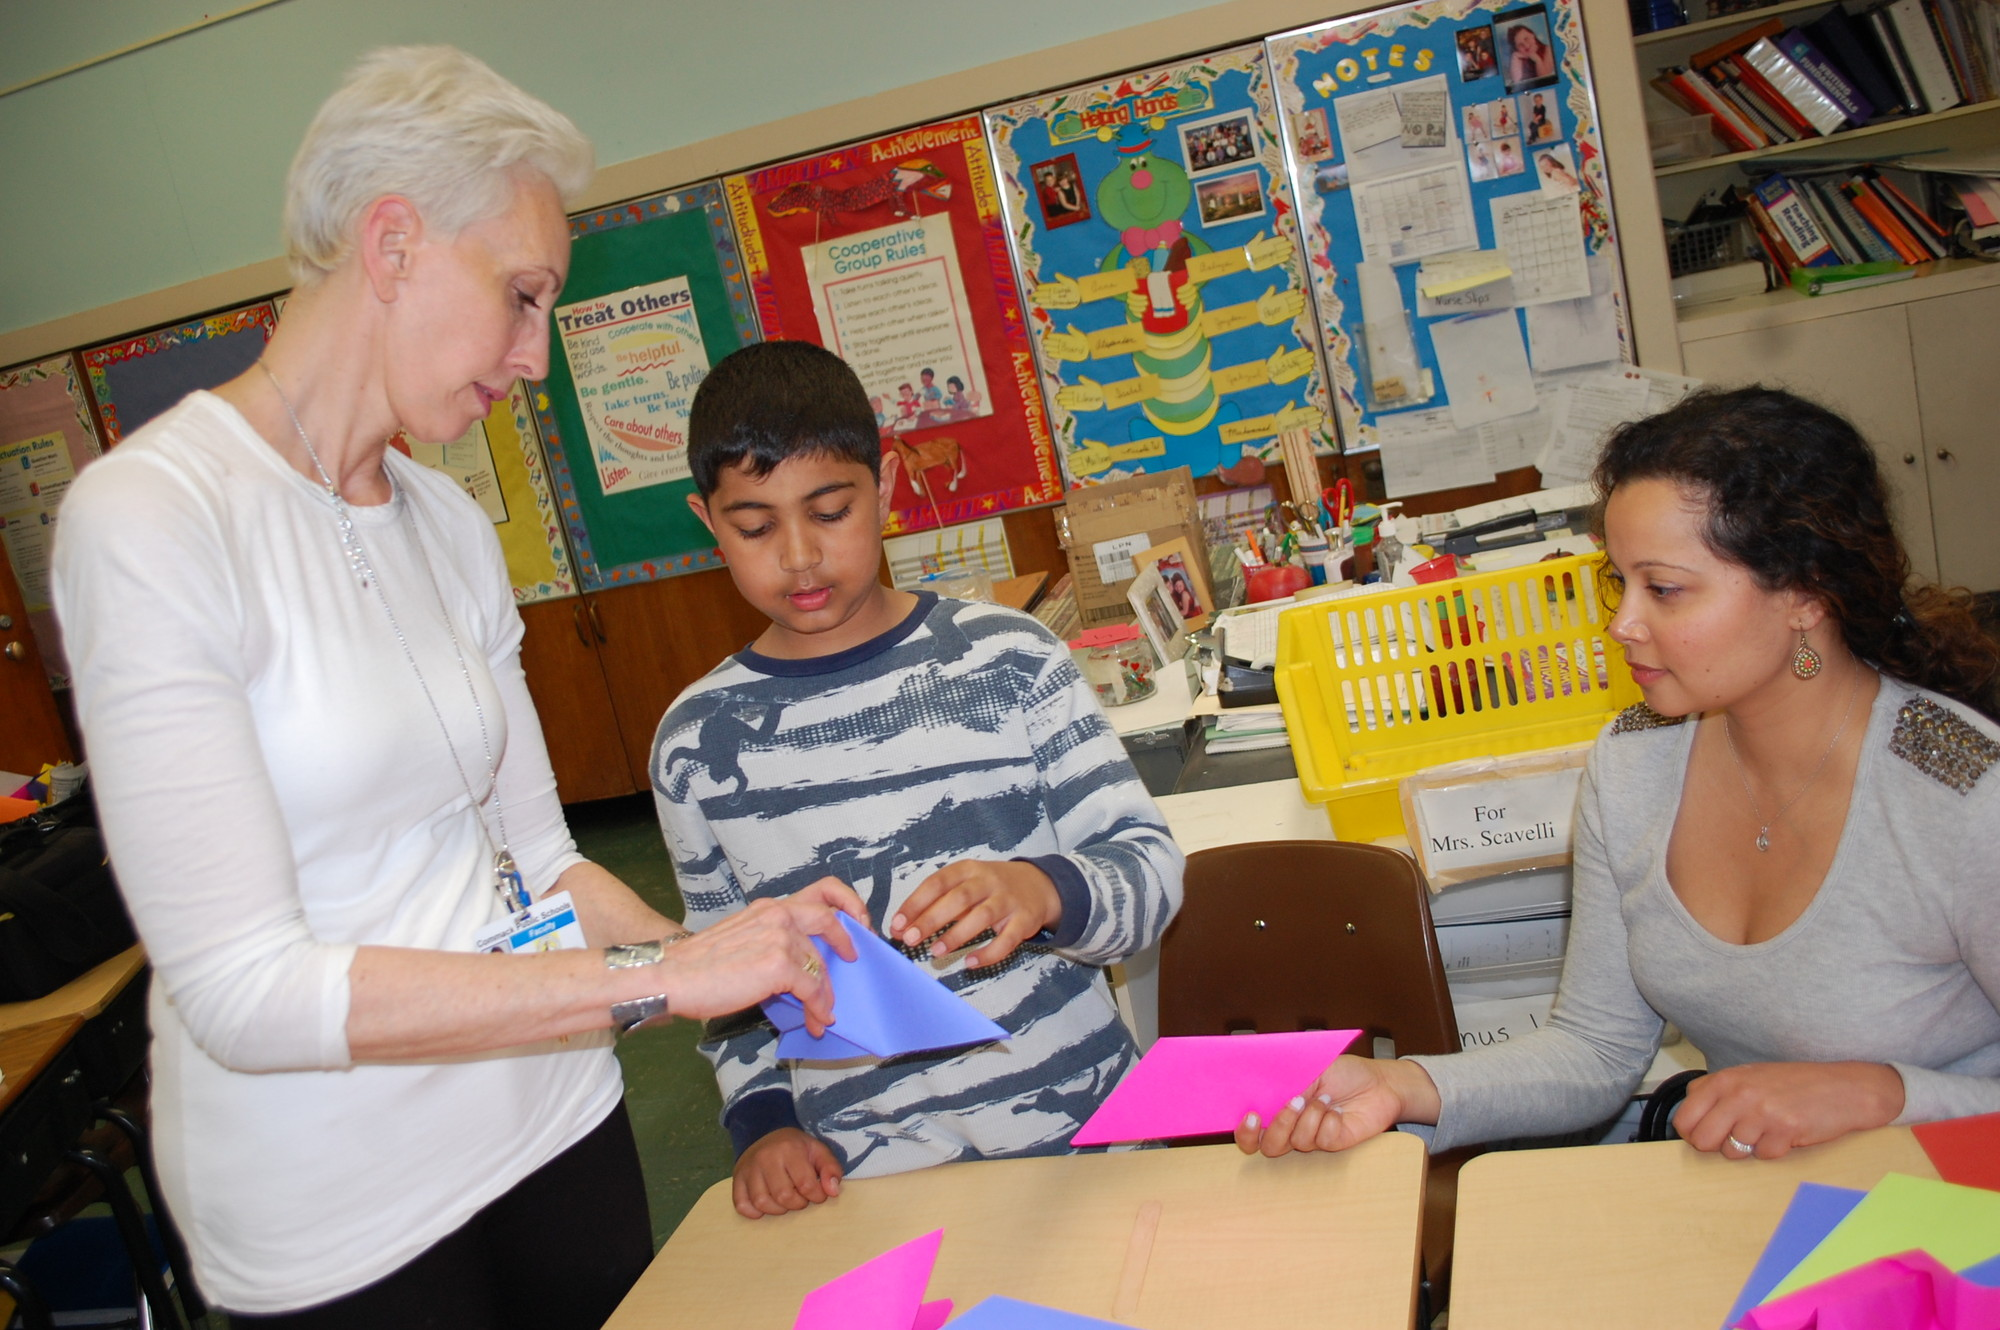 Instructor Leah Bernstein helped Daniel Amin, a fourth-grader at the Willow Road School, and his mother, Savita, with their origami project at District 13's Explorations Day on May 5.